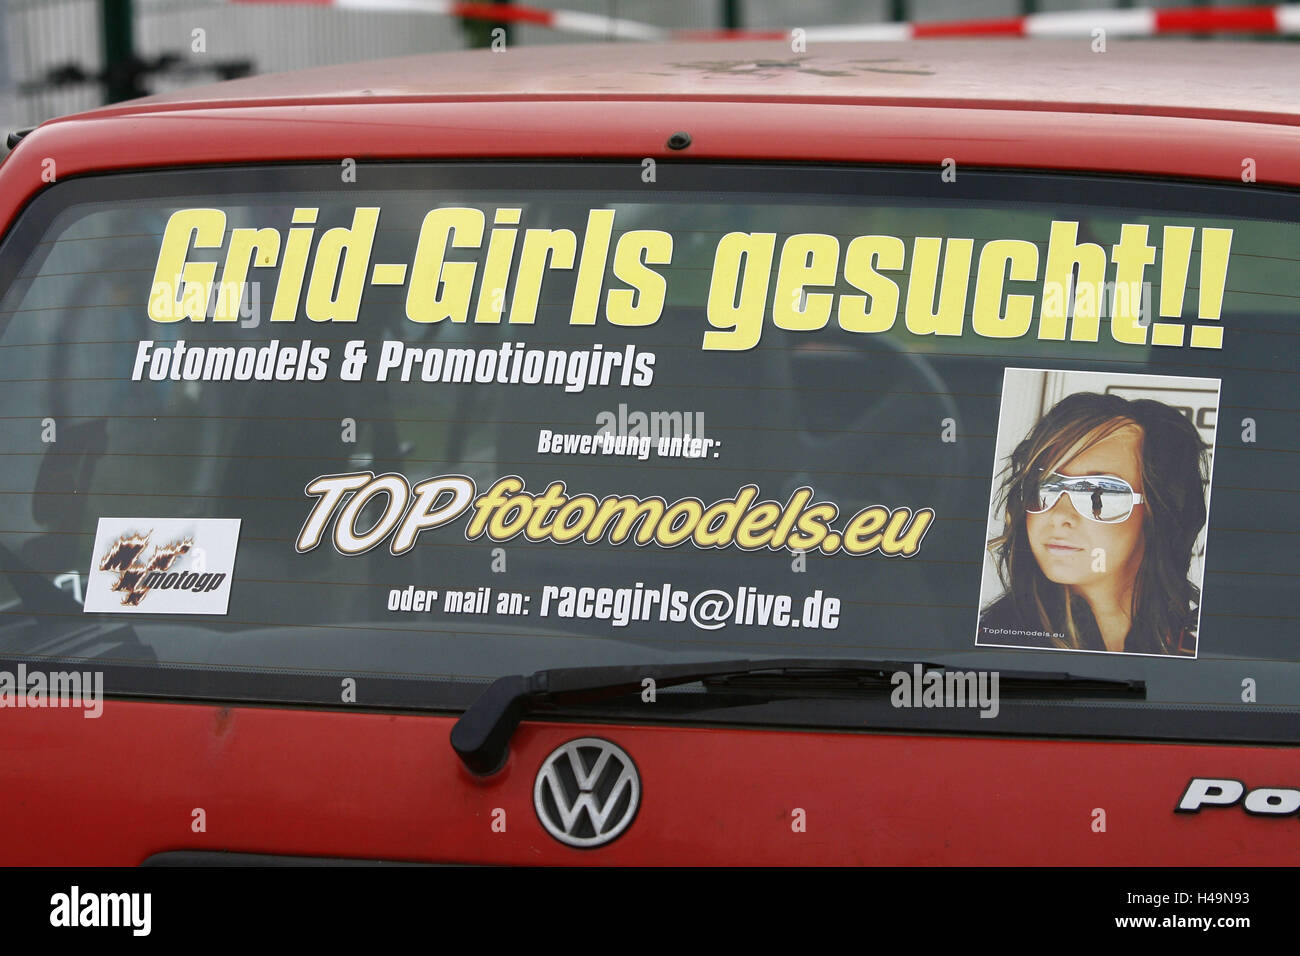 Stroke 'Grid girls in request', motorcycle Germany GP, - Stock Image